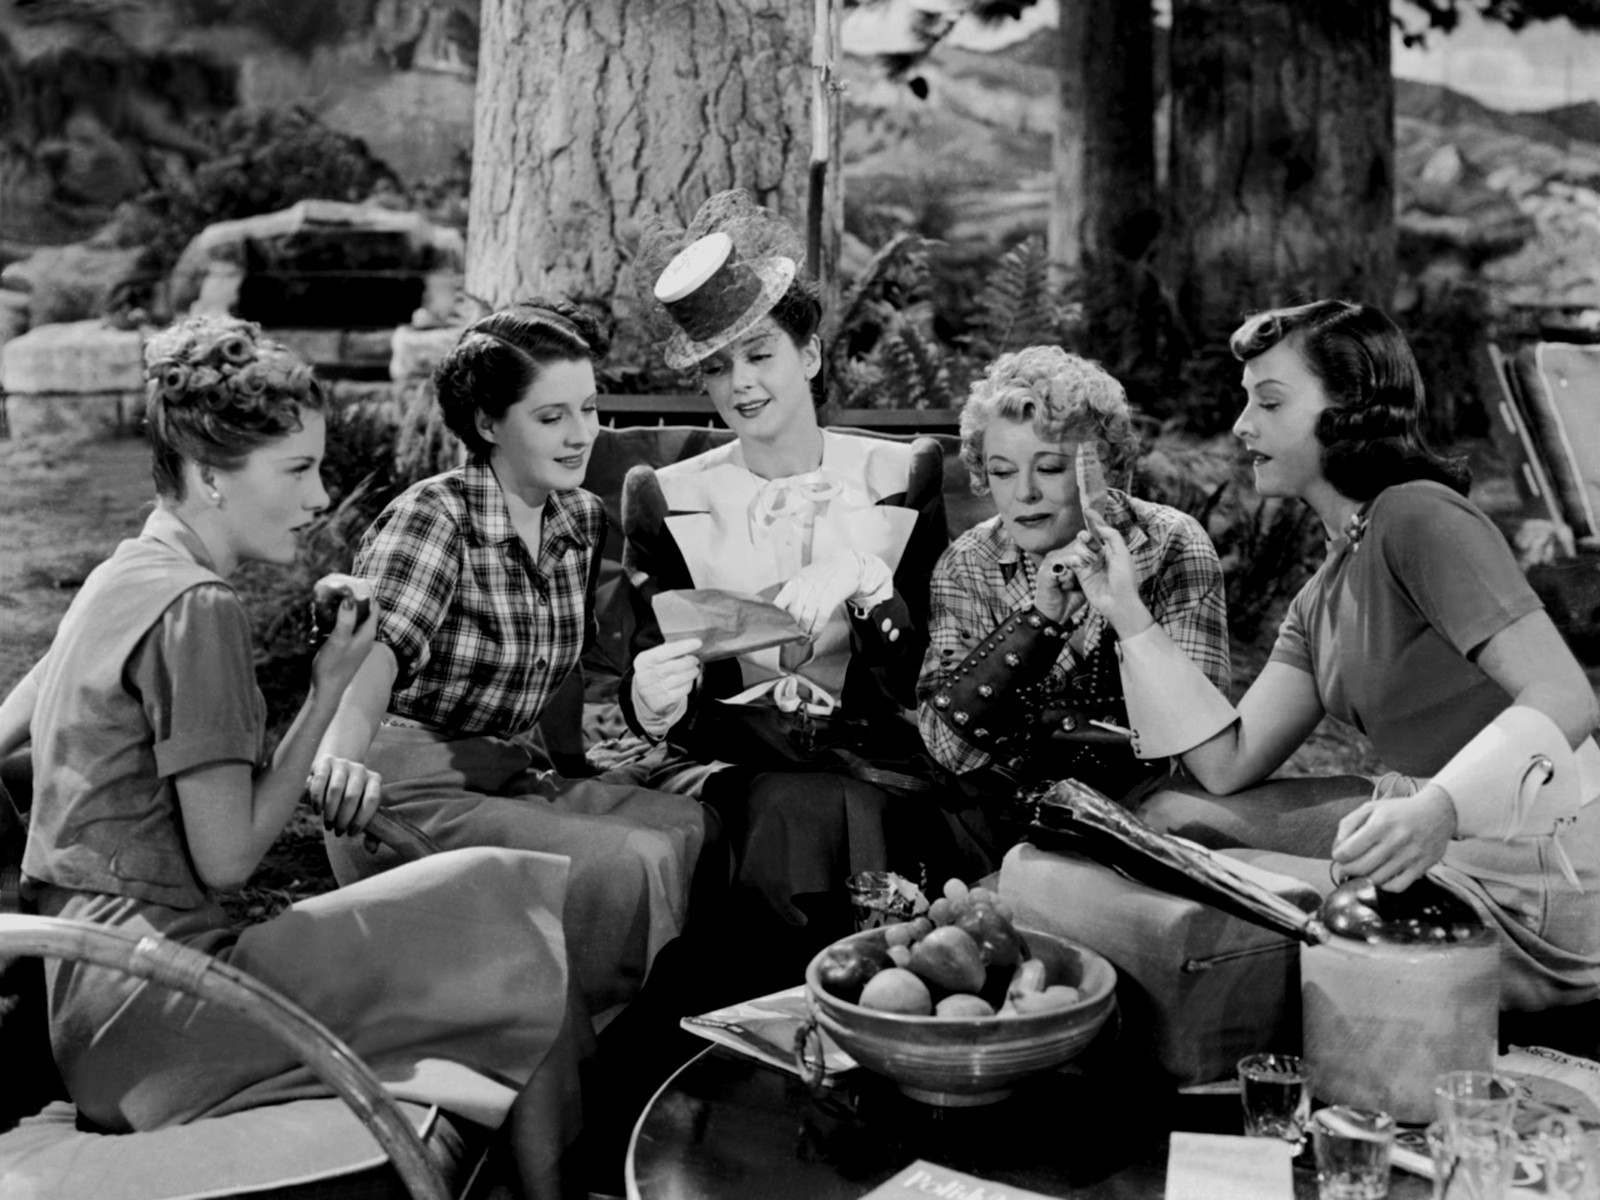 George Cukor's The Women, 1939